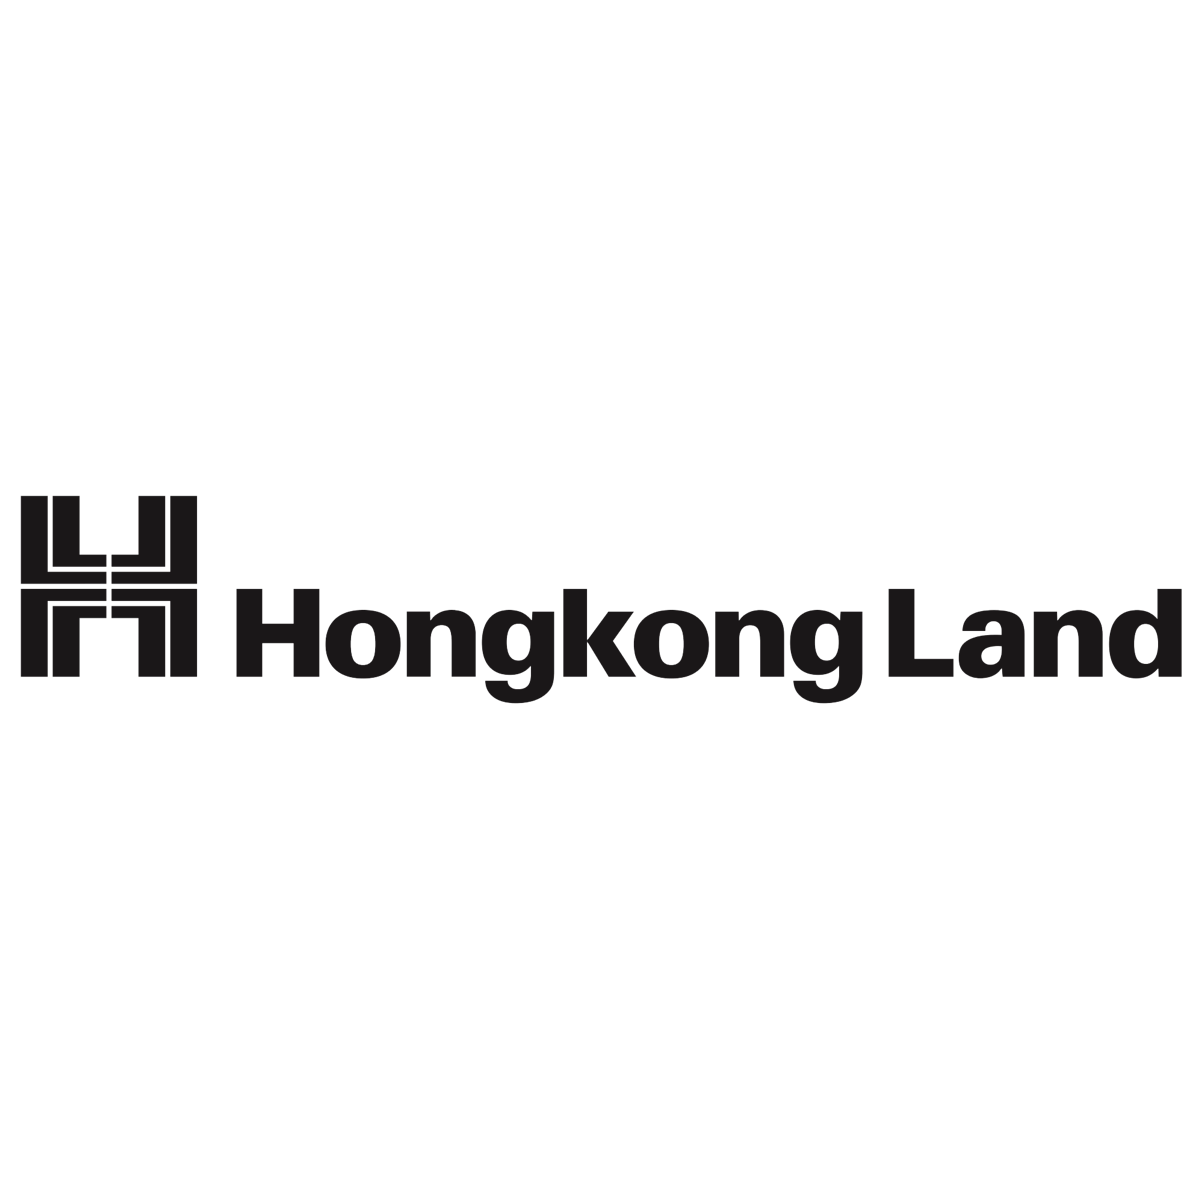 Hongkong Land - DBS Vickers 2018-05-10: Offices Shining